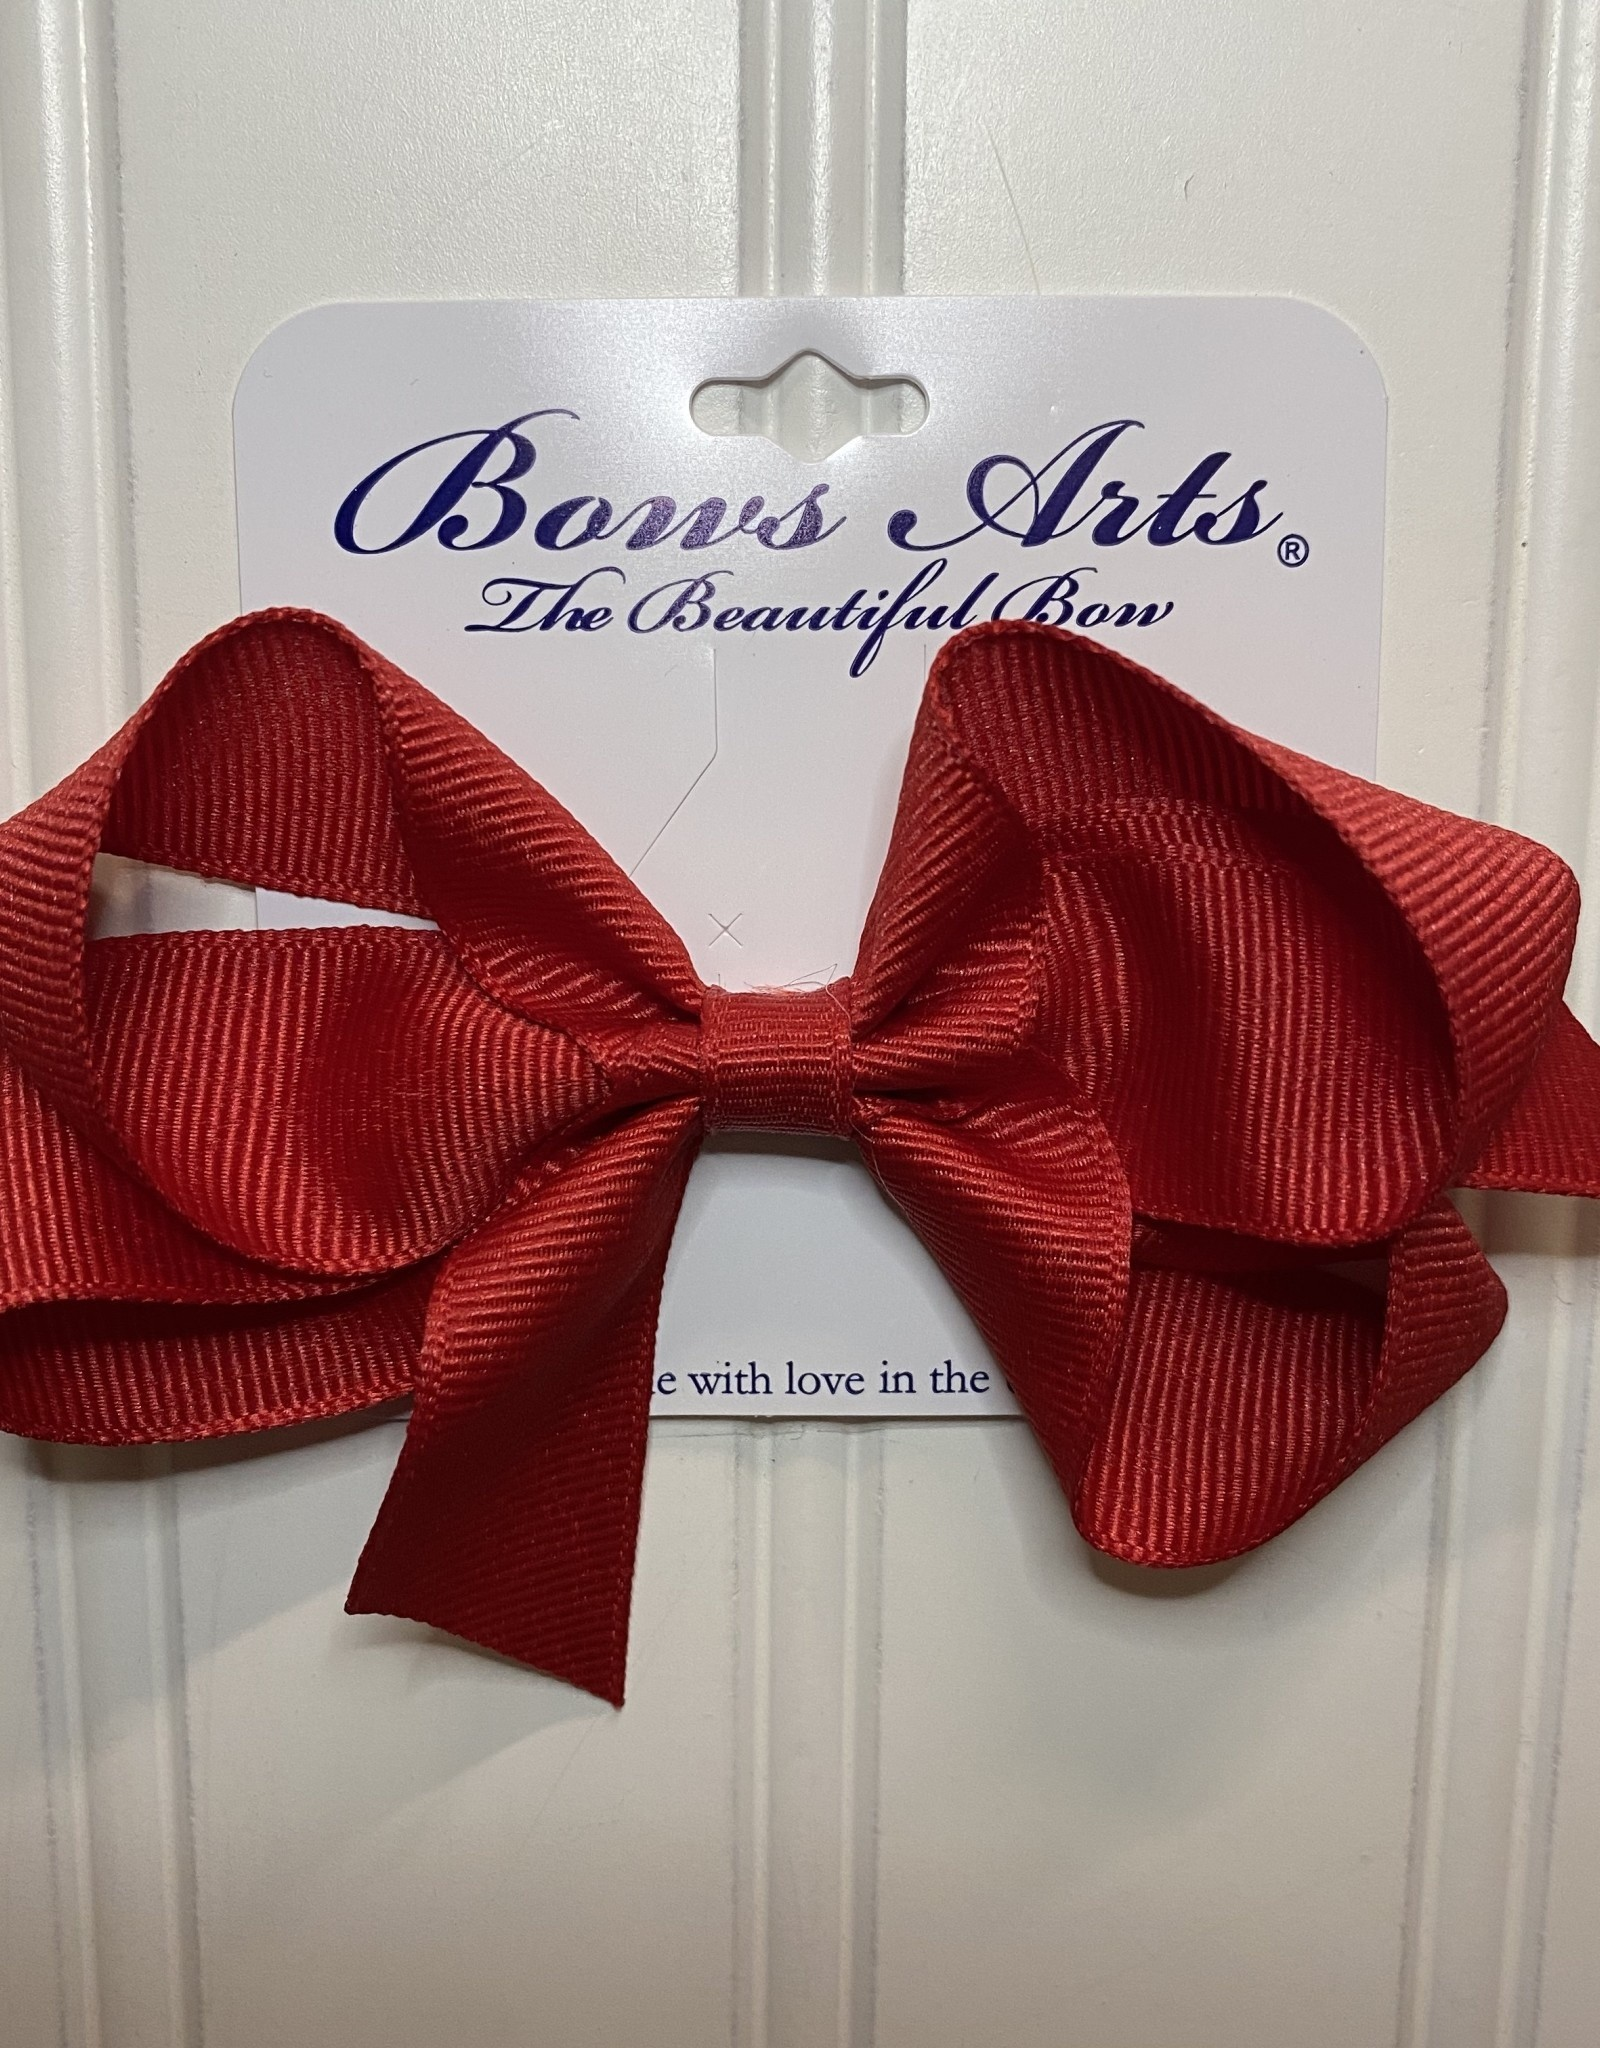 "Bows Arts Small Classic Bow 4"" - Red"